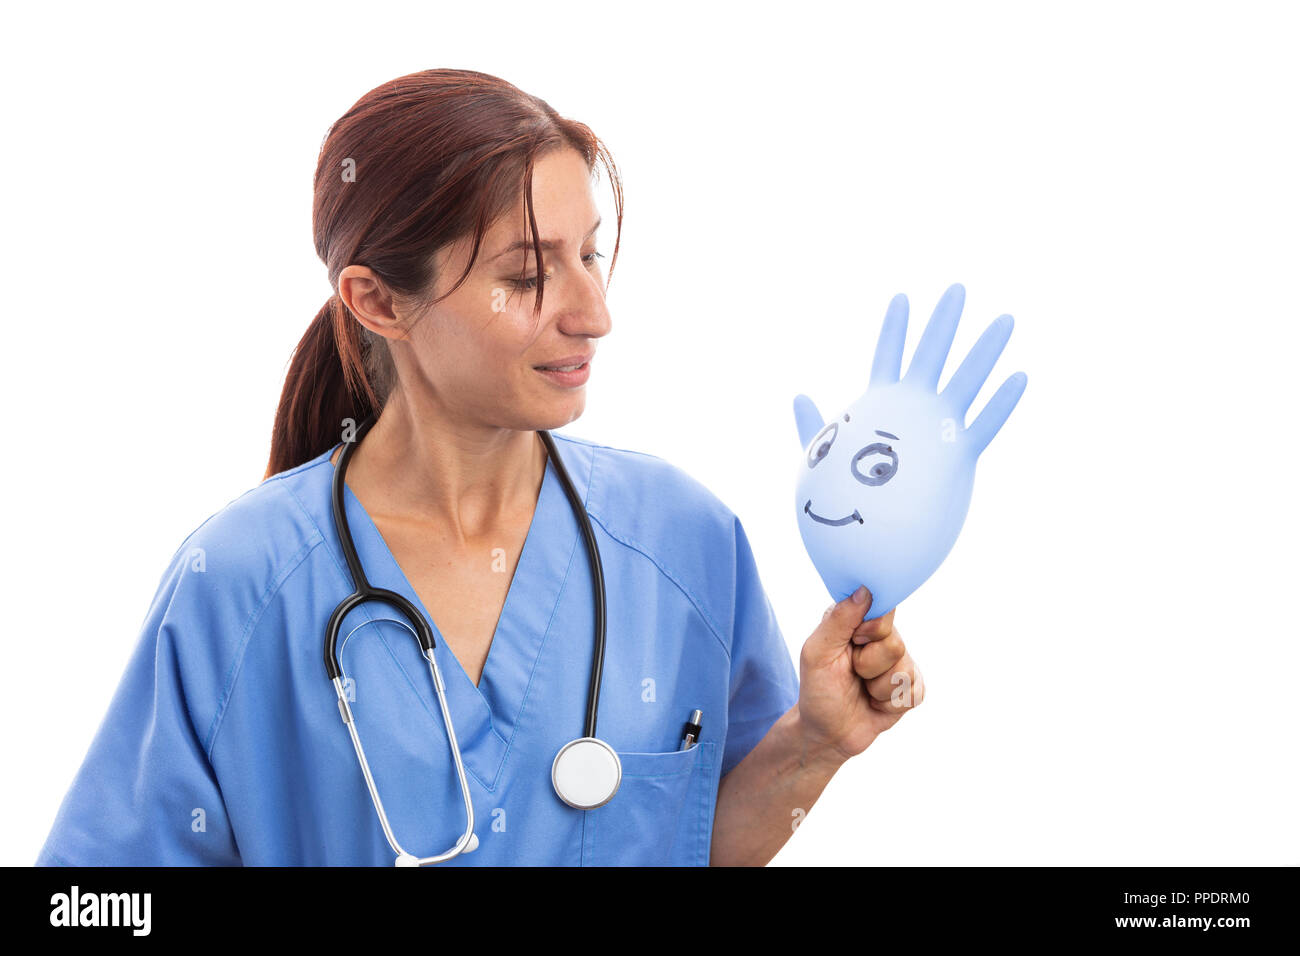 Friendly female pediatrician nurse looking at smiling latex glove isolated on white background - Stock Image